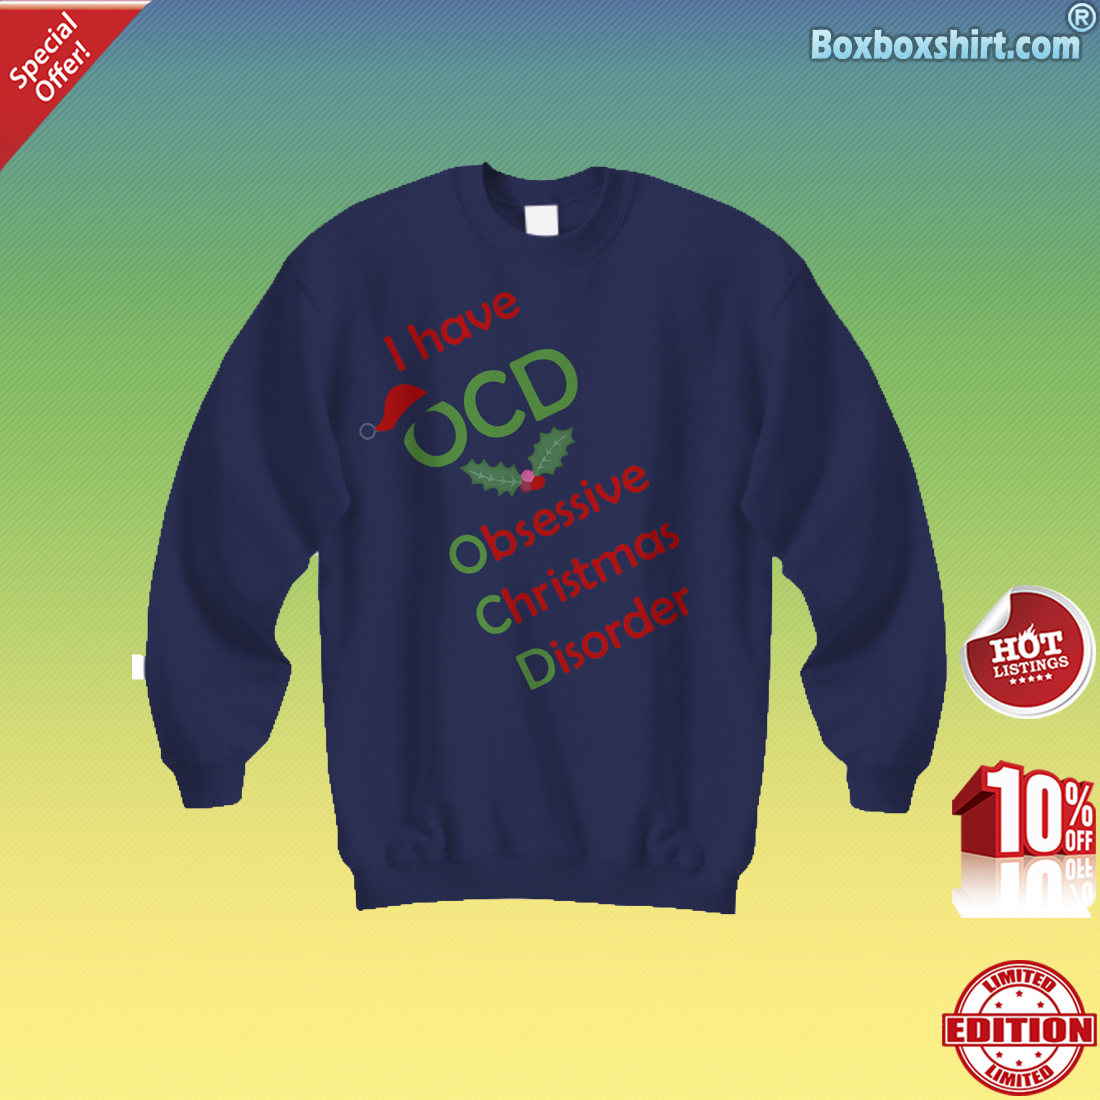 Cute] I have OCD obsenssive Christmas disorder shirt - boxboxshirt\'s ...